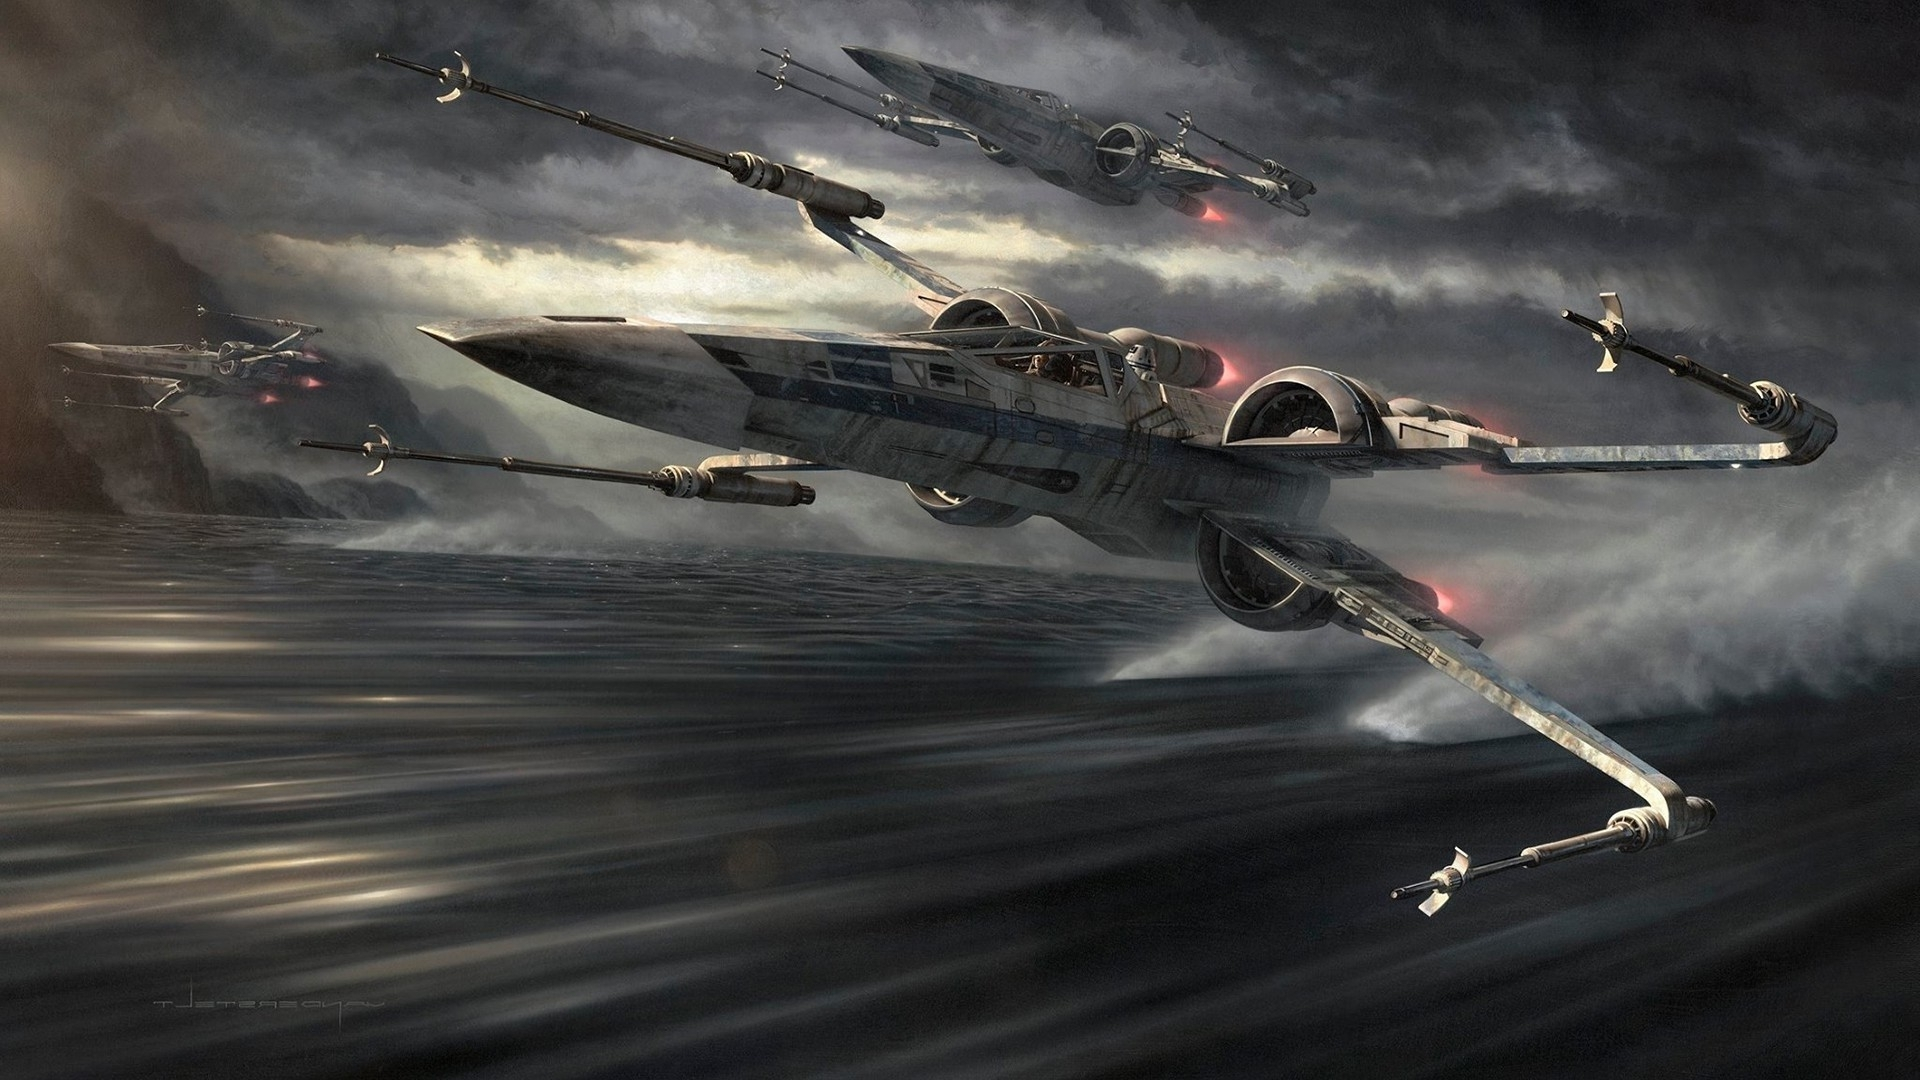 x wing wallpaper hd (62+ images)